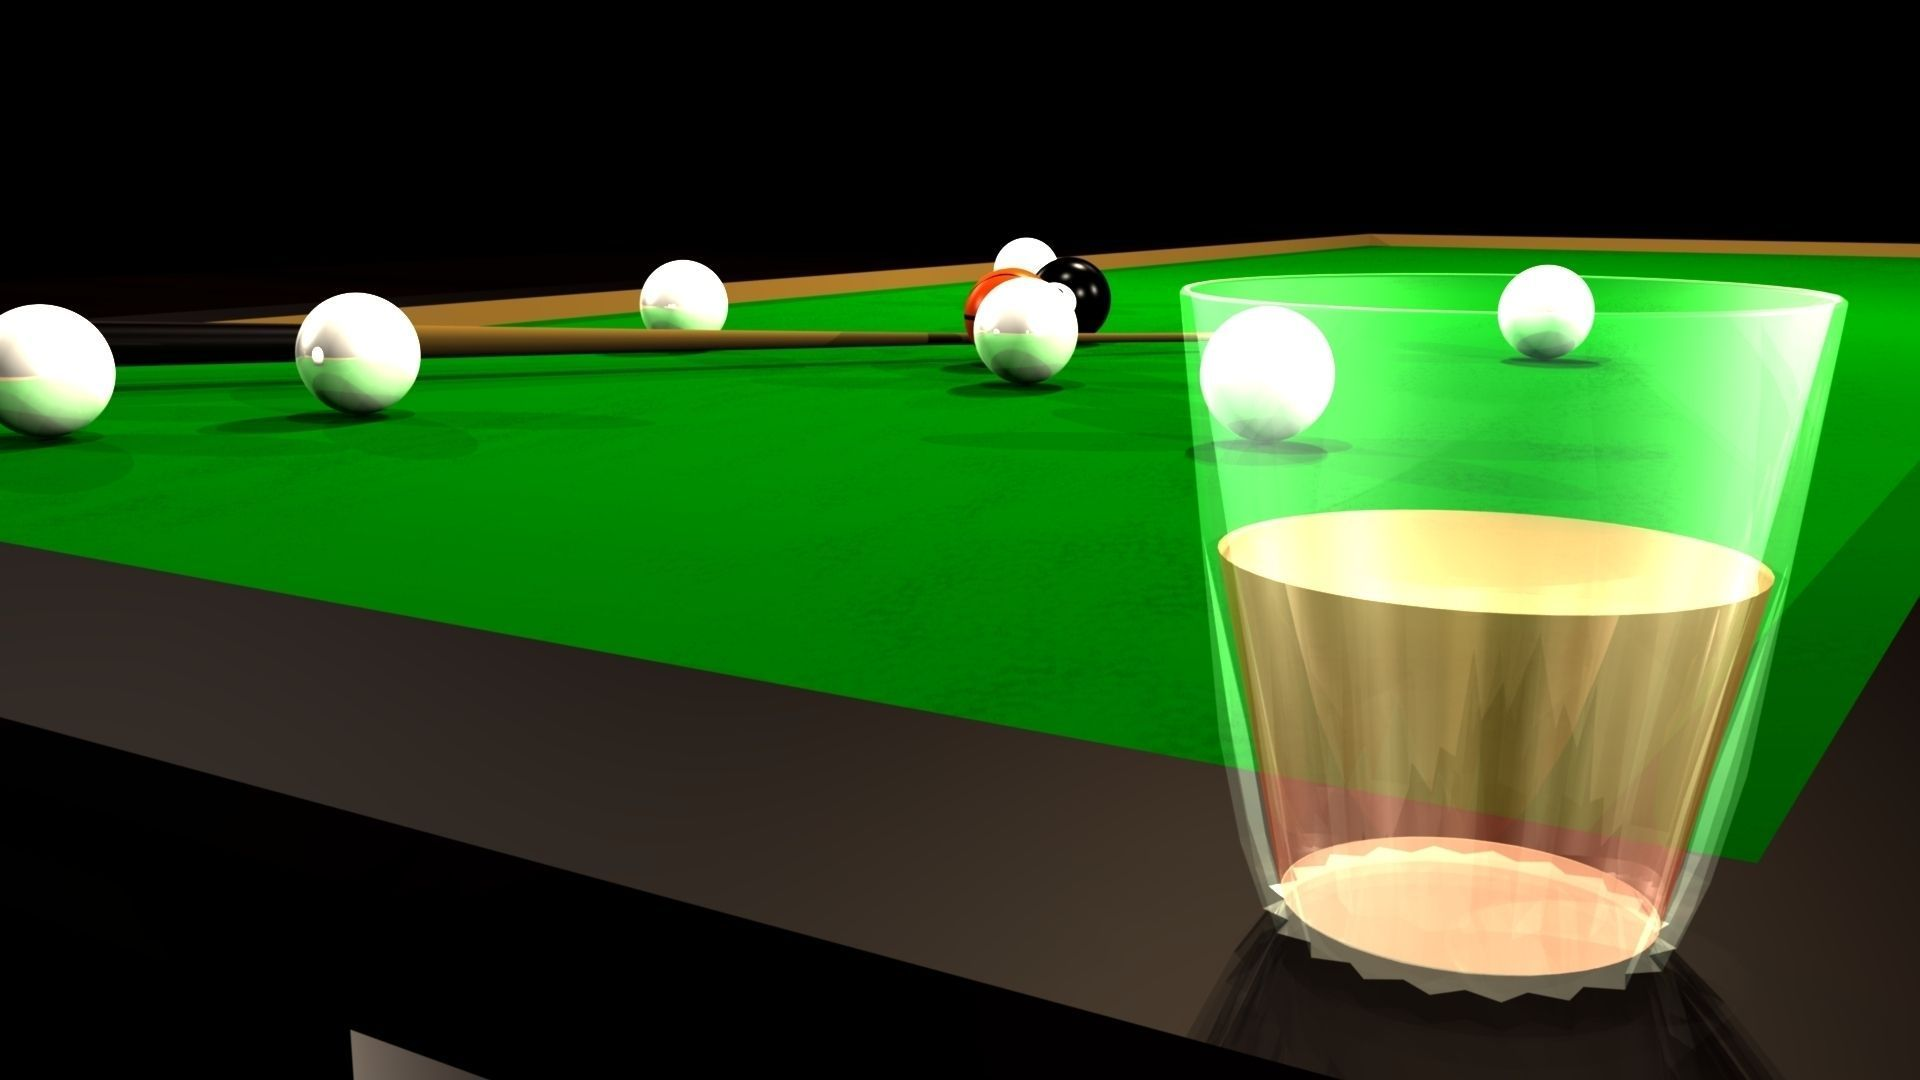 Snooker table glass cup 3d model obj fbx ma mb for Glass billiard table